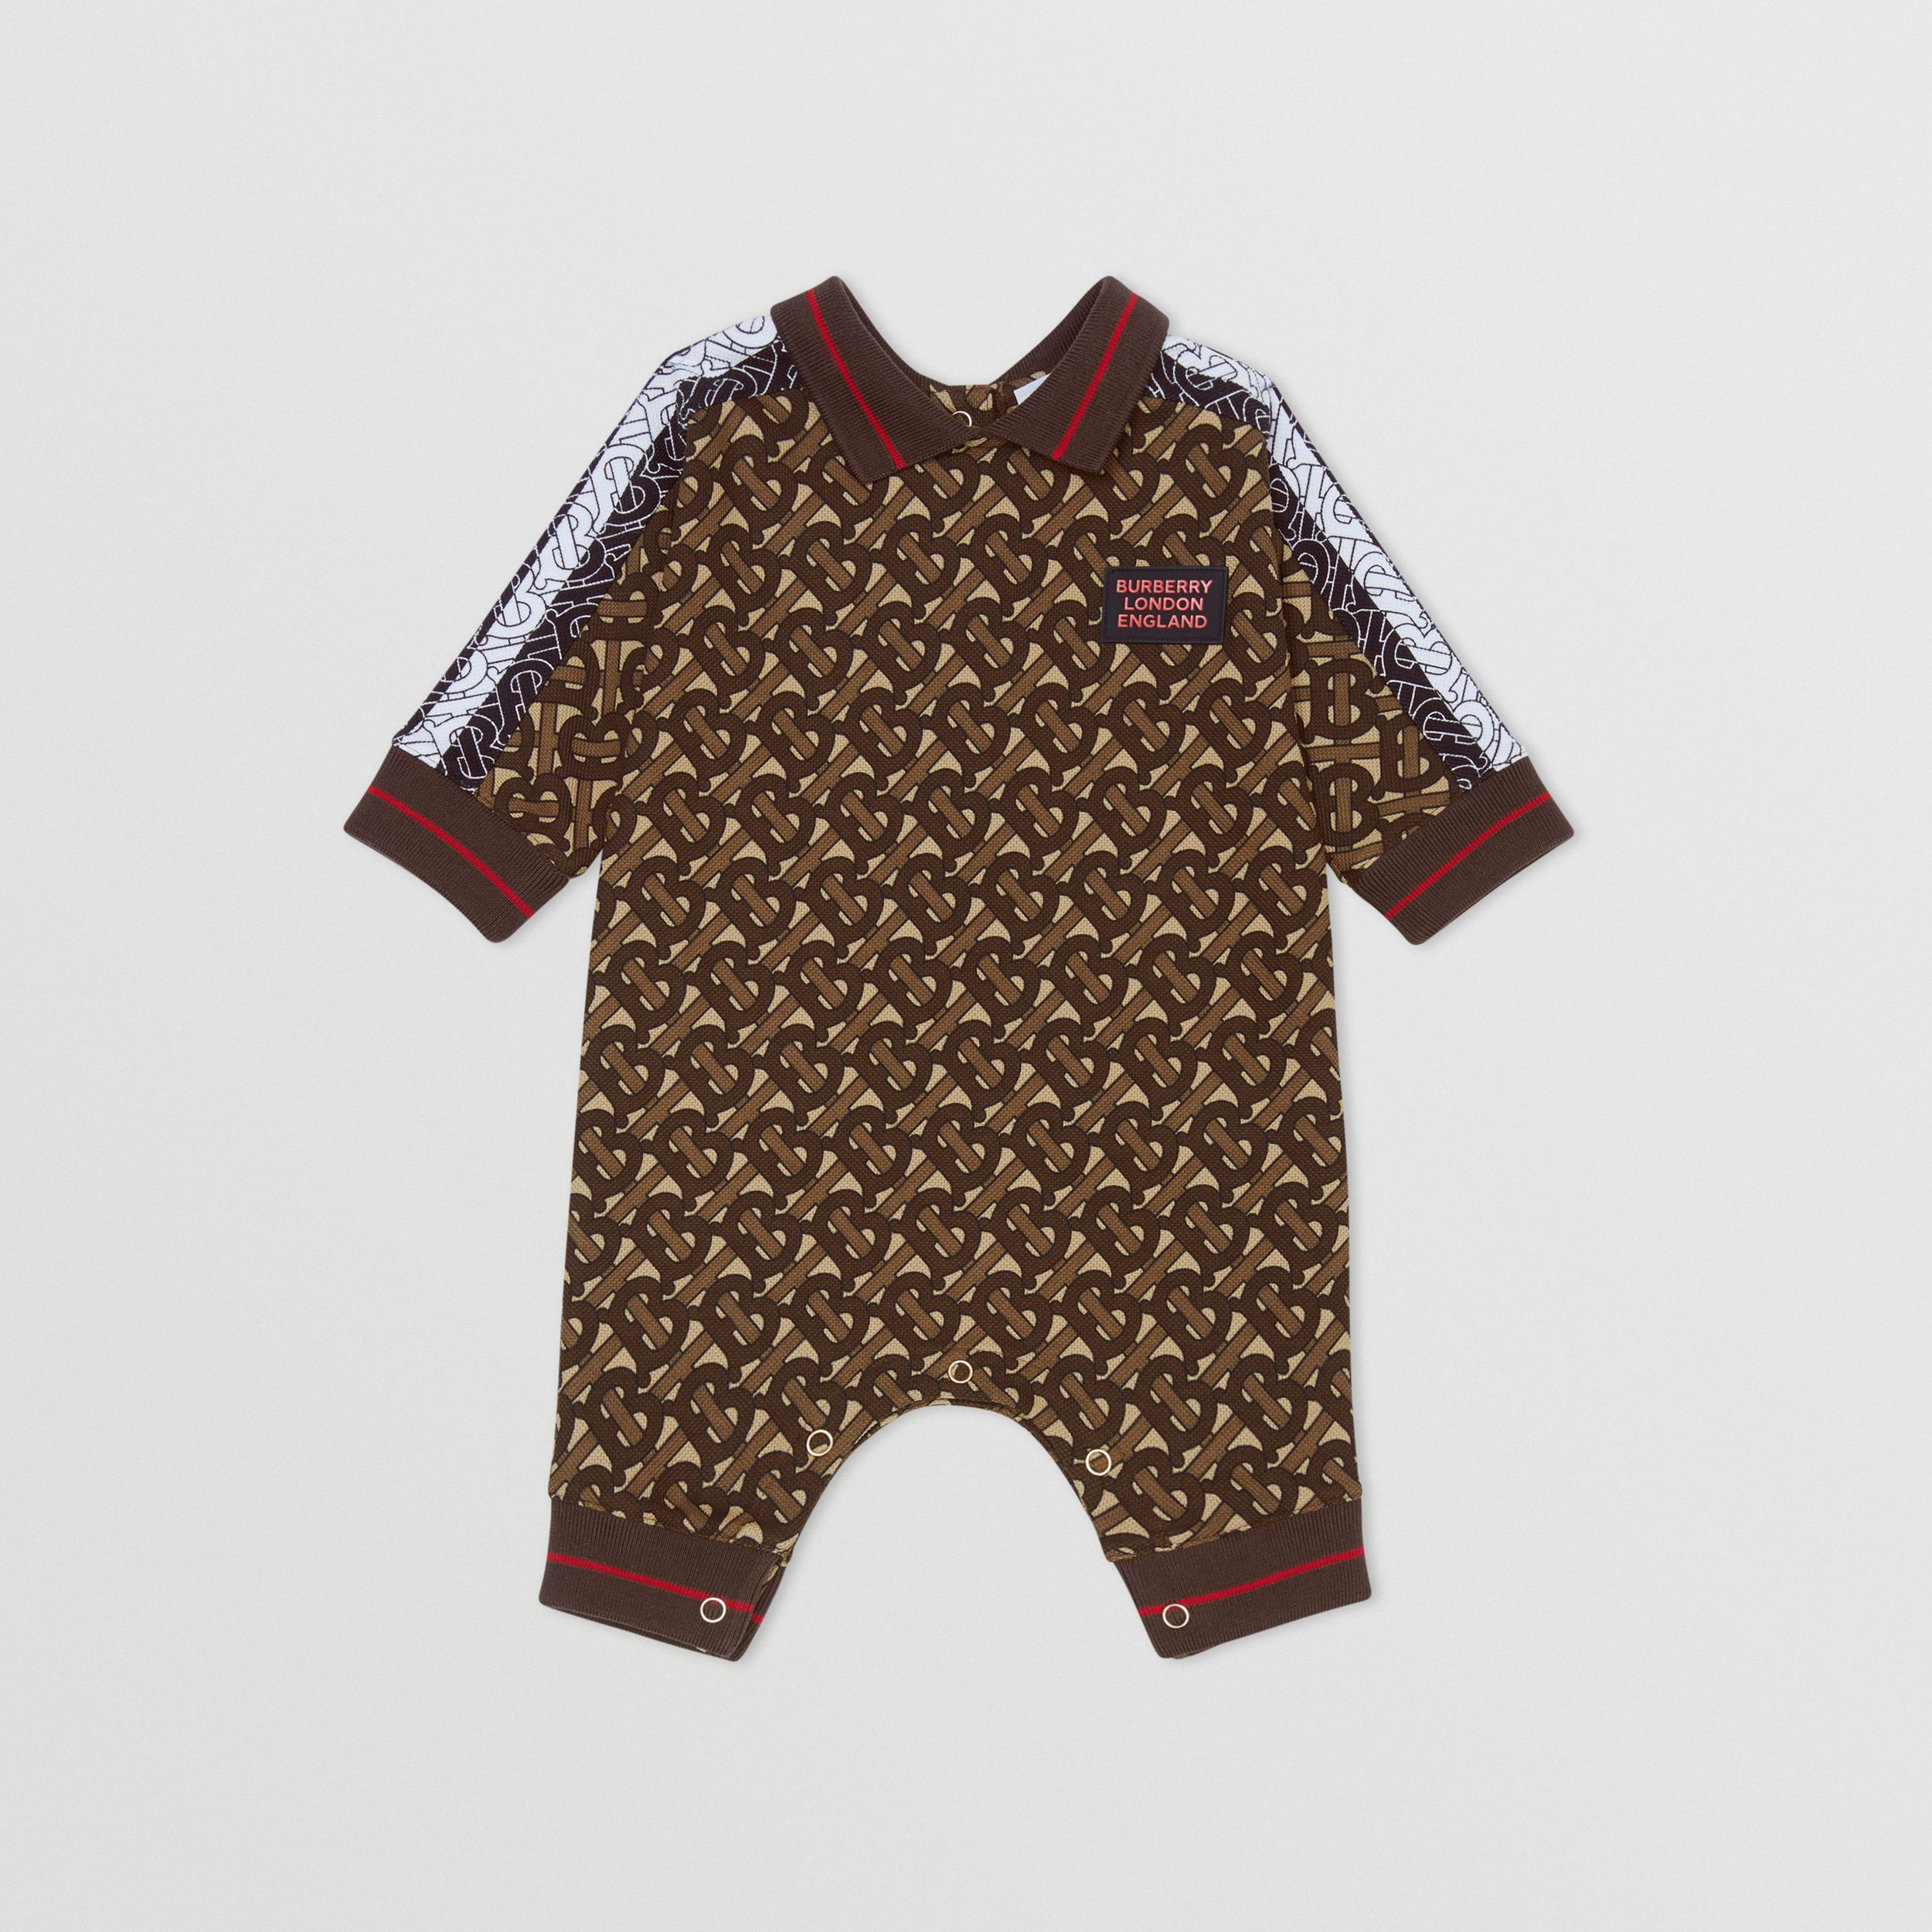 Monogram Stripe Print Cotton Piqué Jumpsuit in Bridle Brown - Children | Burberry - 1